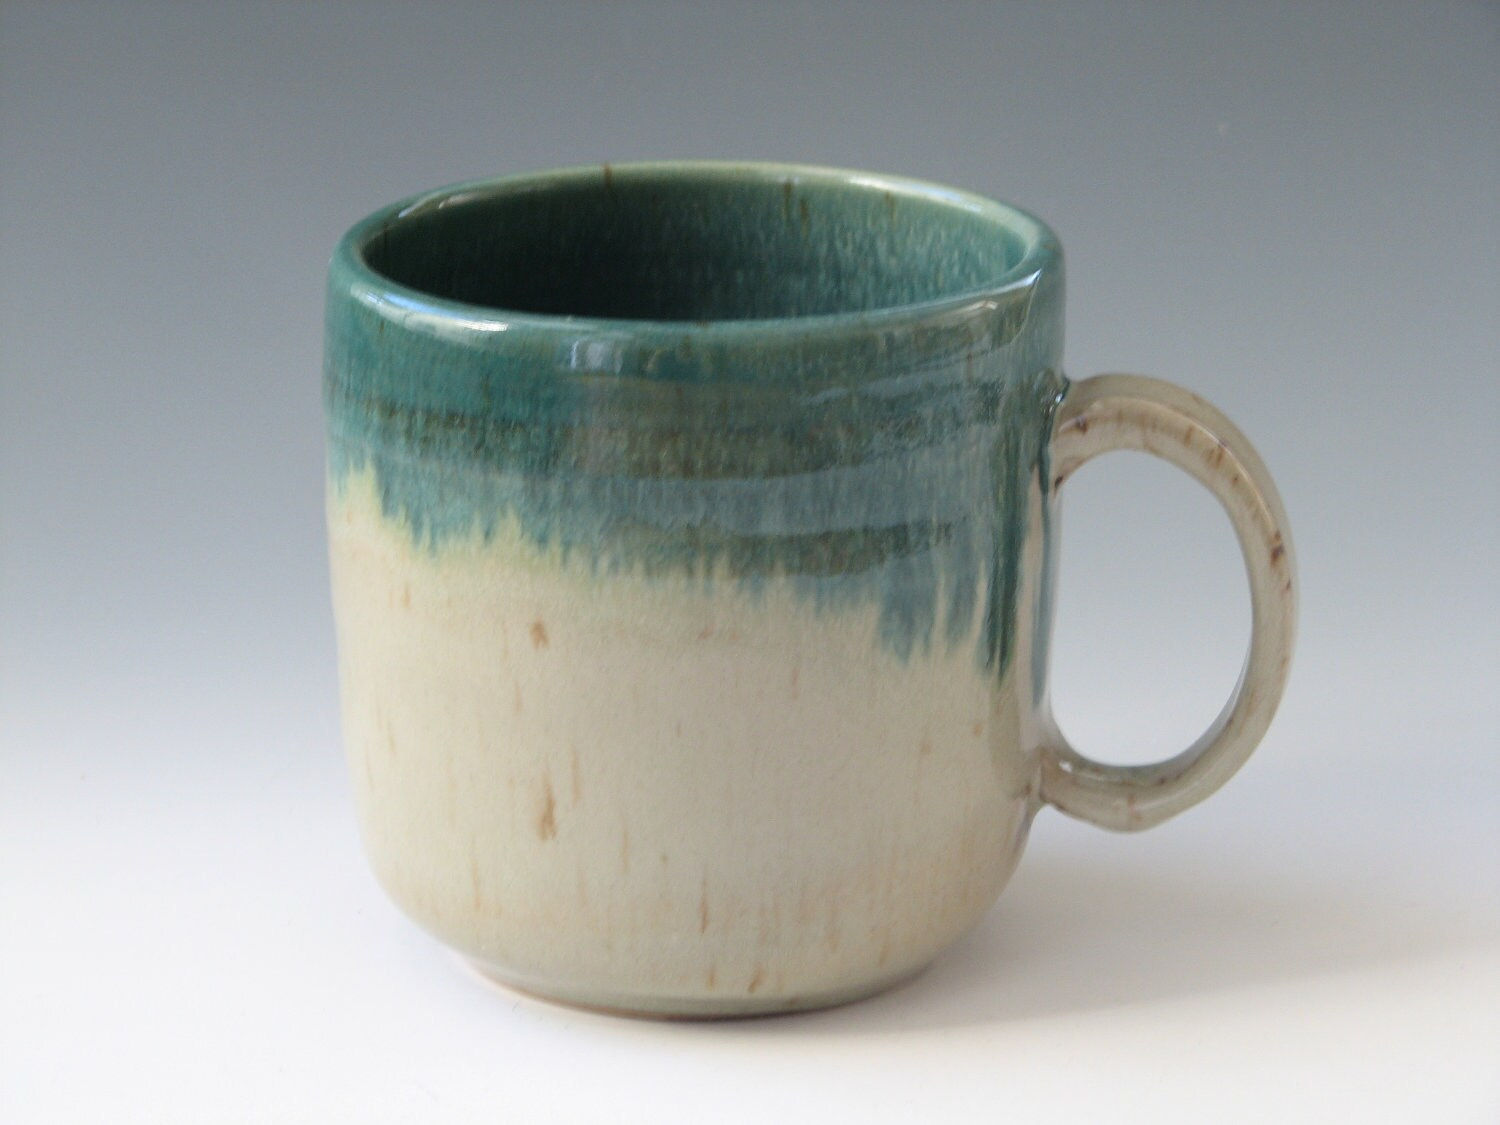 Coffee mug handmade stoneware pottery mug olive green ceramic for Handmade mug designs